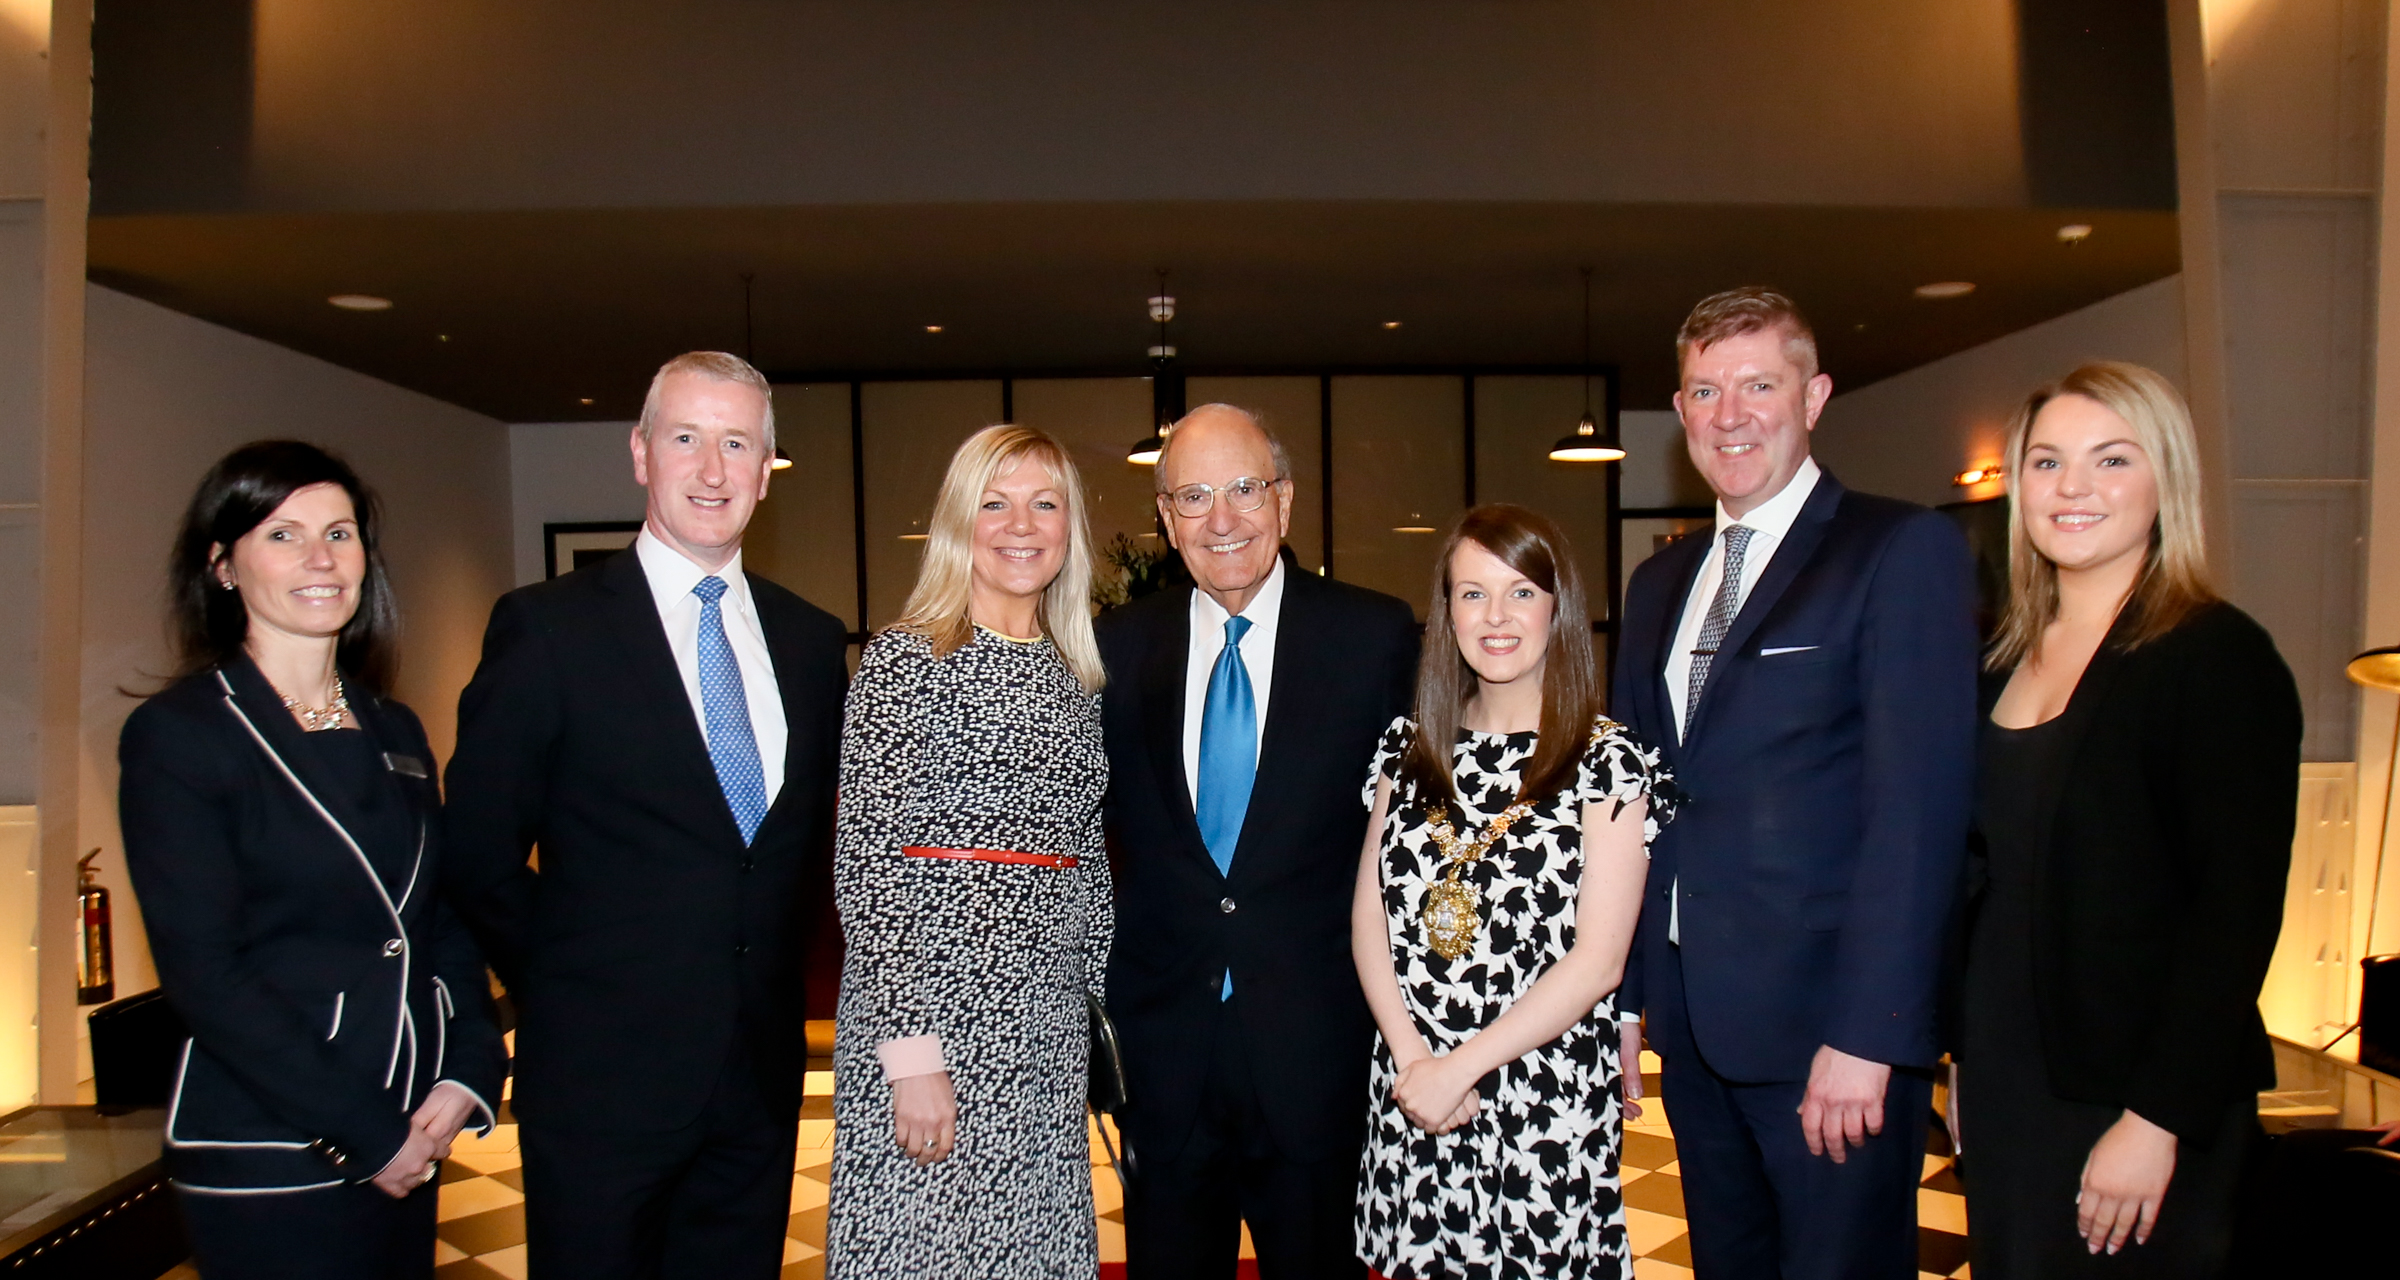 from left, Titanic Hotel Belfast sales manager Yvonne McIlree, Harcourt head of hotels Clement Gaffney, Belfast Council CEO Suzanne Wylie, Senator George Mitchell,the Lord Mayor of Belfast Nuala McAllister, GM Adrian McNally